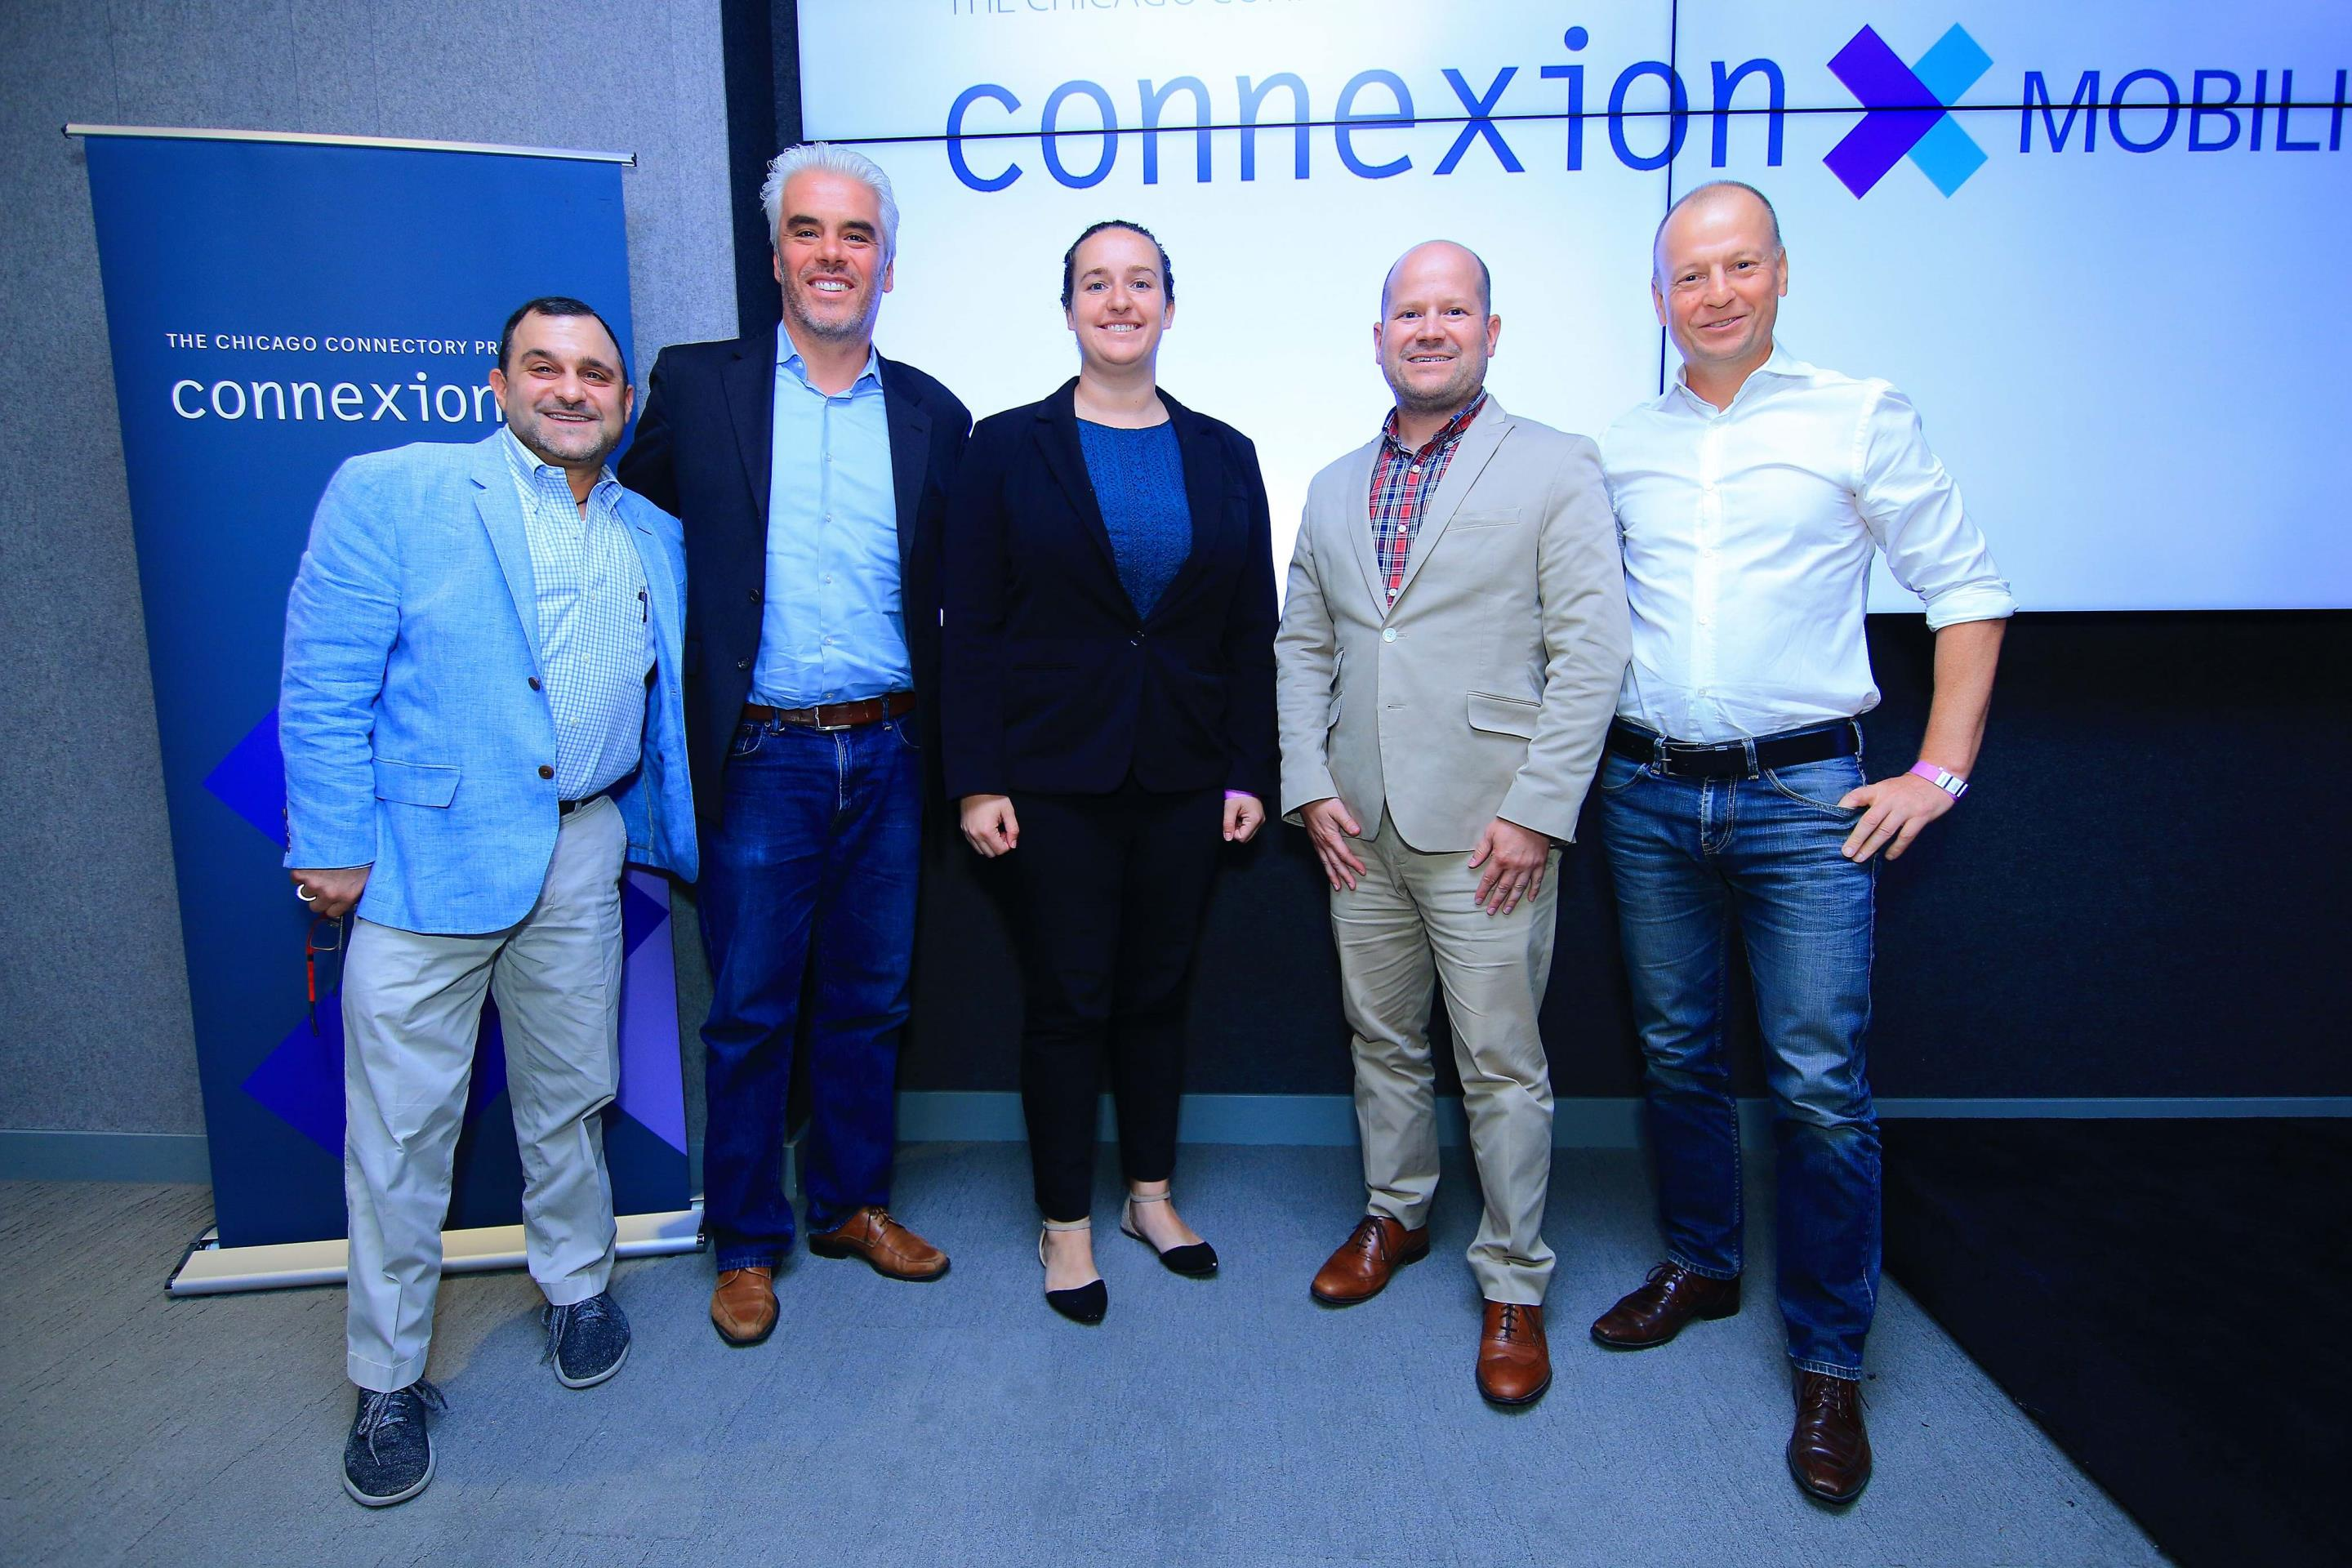 The Chicago Connectory Presents Connexion Mobility